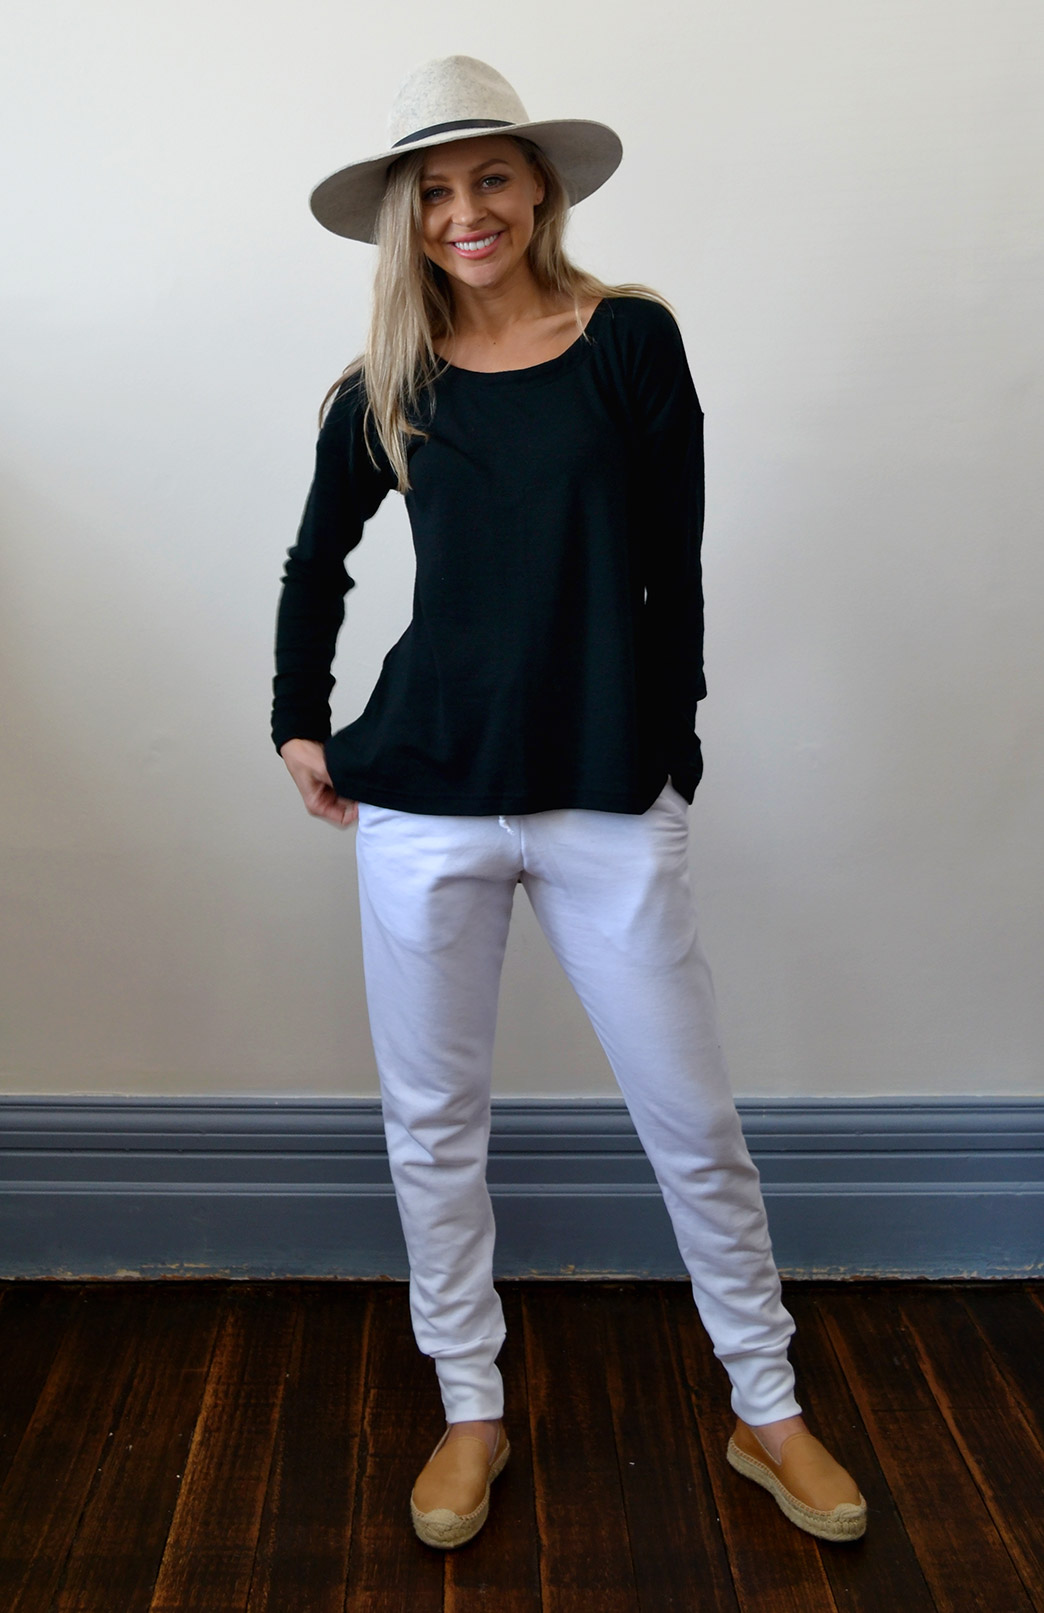 Lola Top - Women's Black Wool Long Sleeve Winter Top - Smitten Merino Tasmania Australia